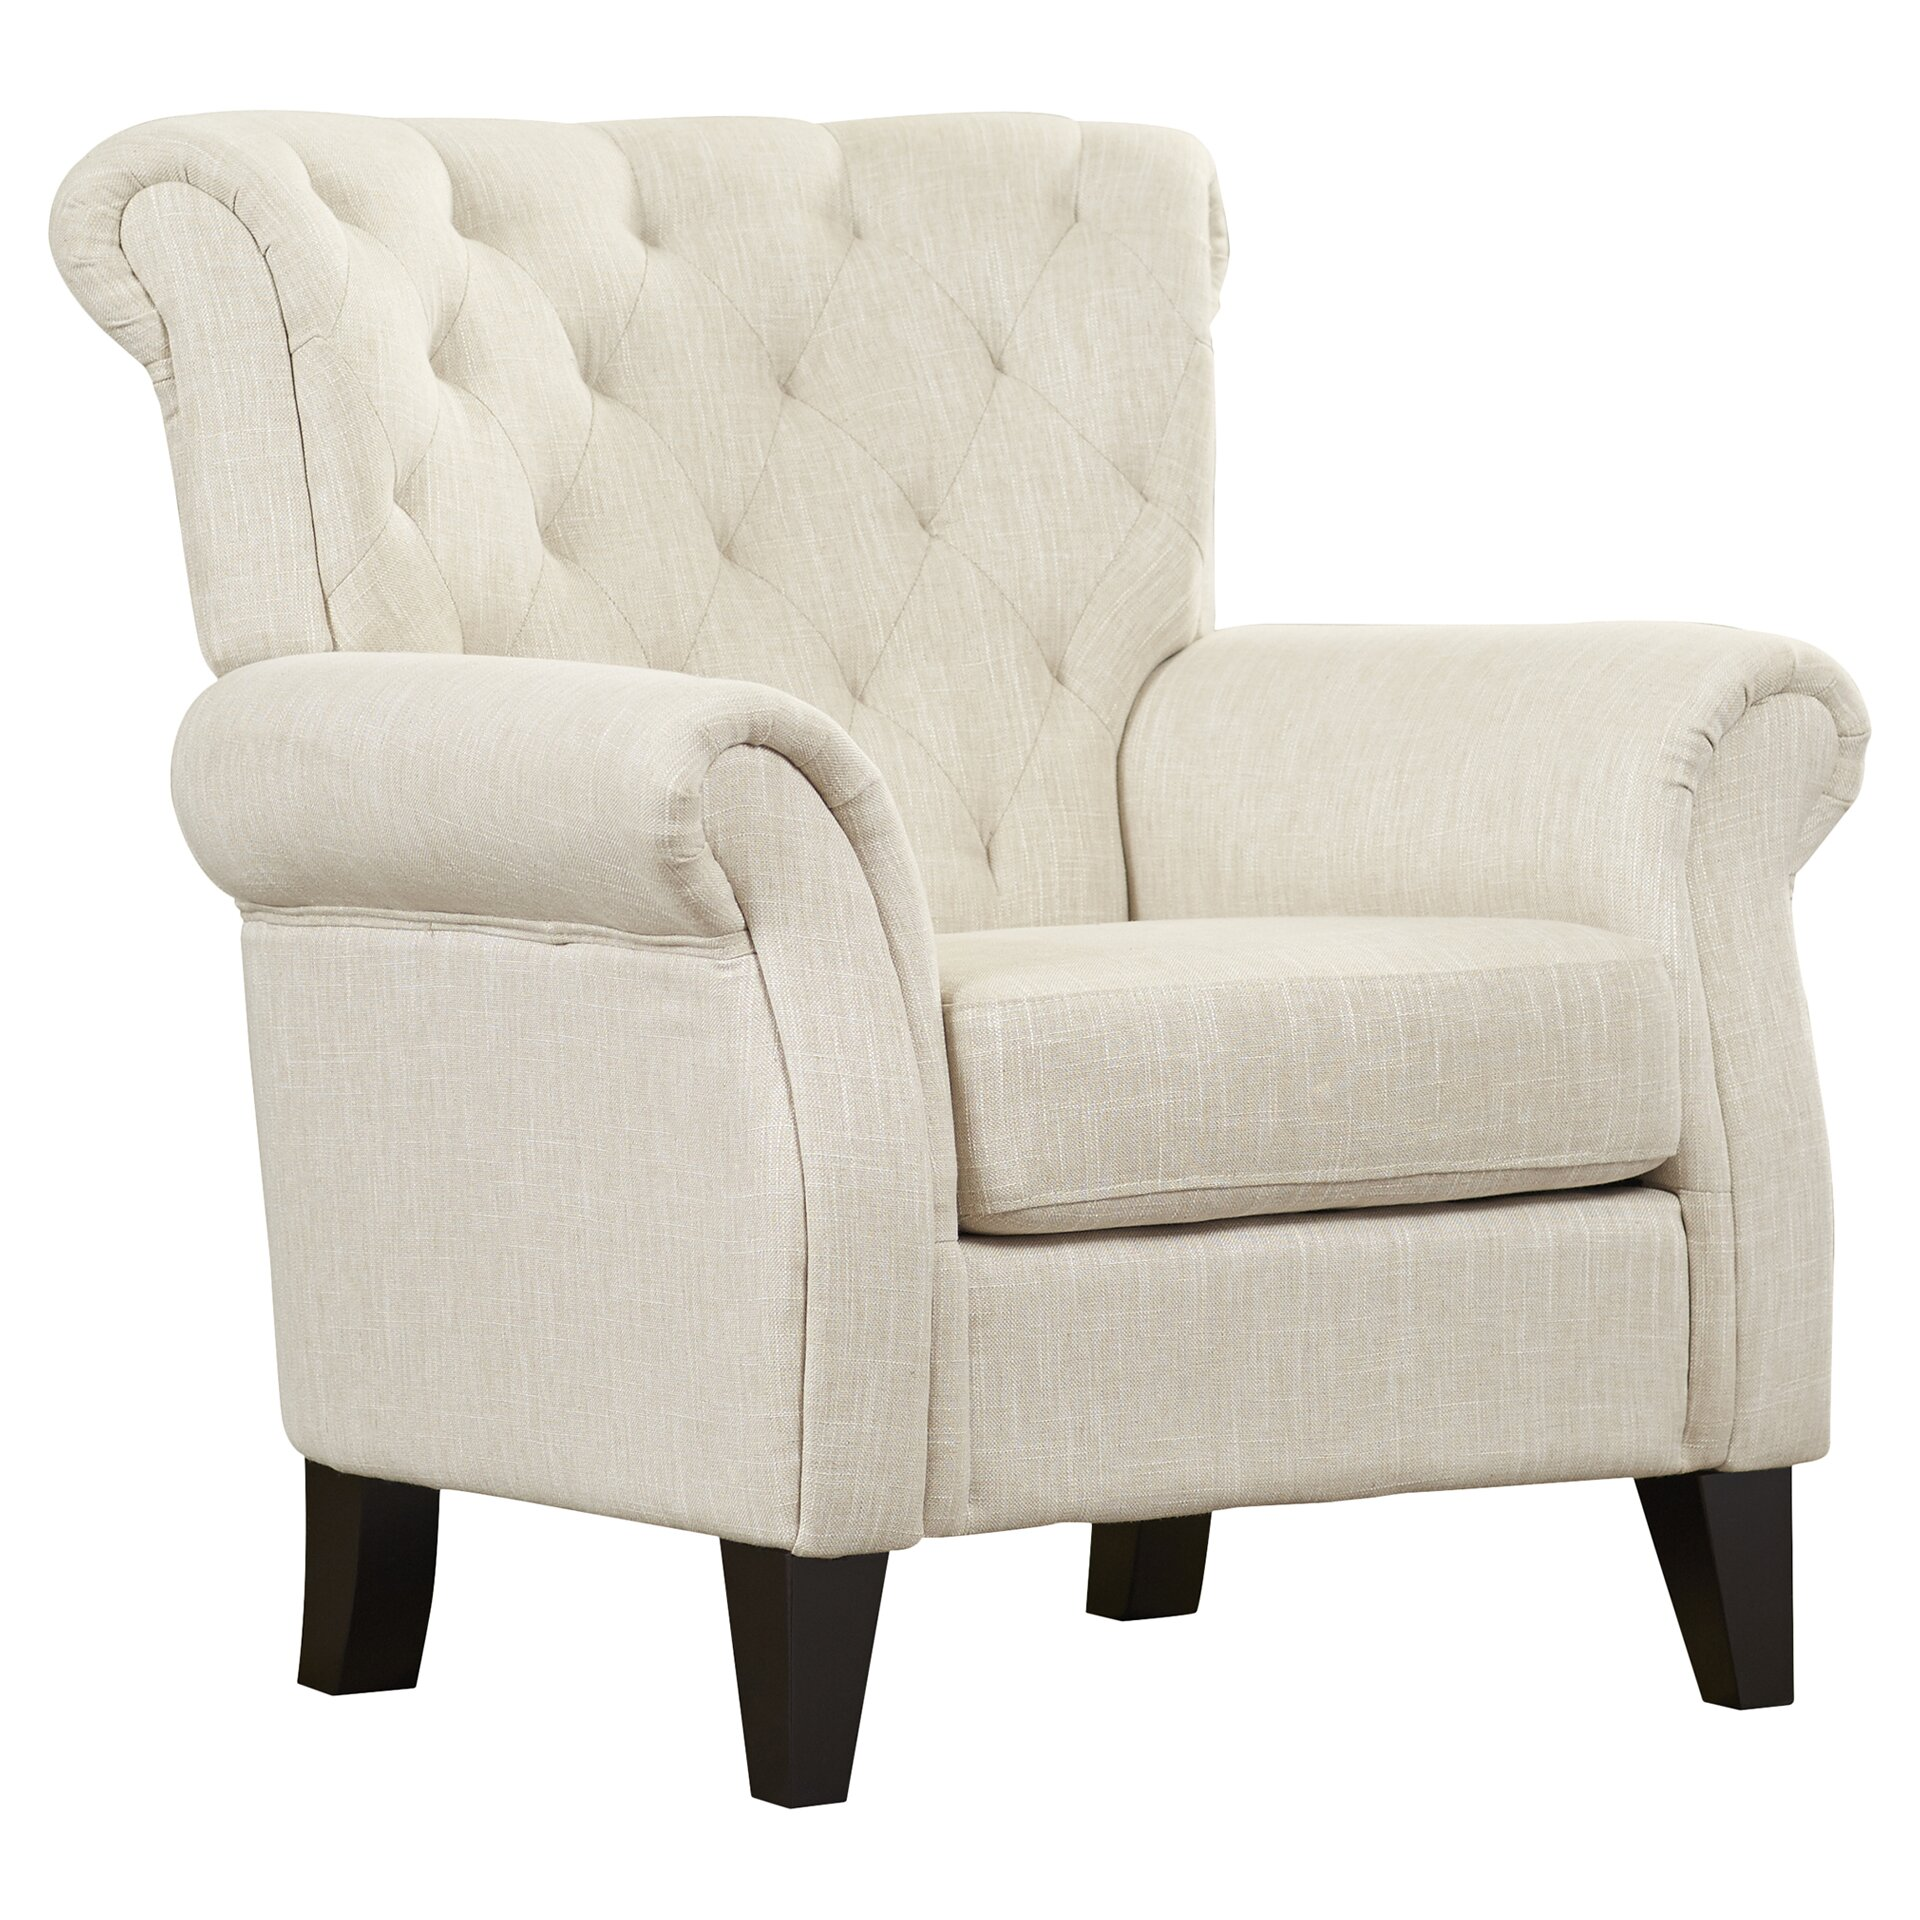 Alcott Hill Springfield Tufted Upholstered Arm Chair  : Springfield Tufted Upholstered Arm Chair ALCT3842 from www.wayfair.com size 1920 x 1920 jpeg 647kB